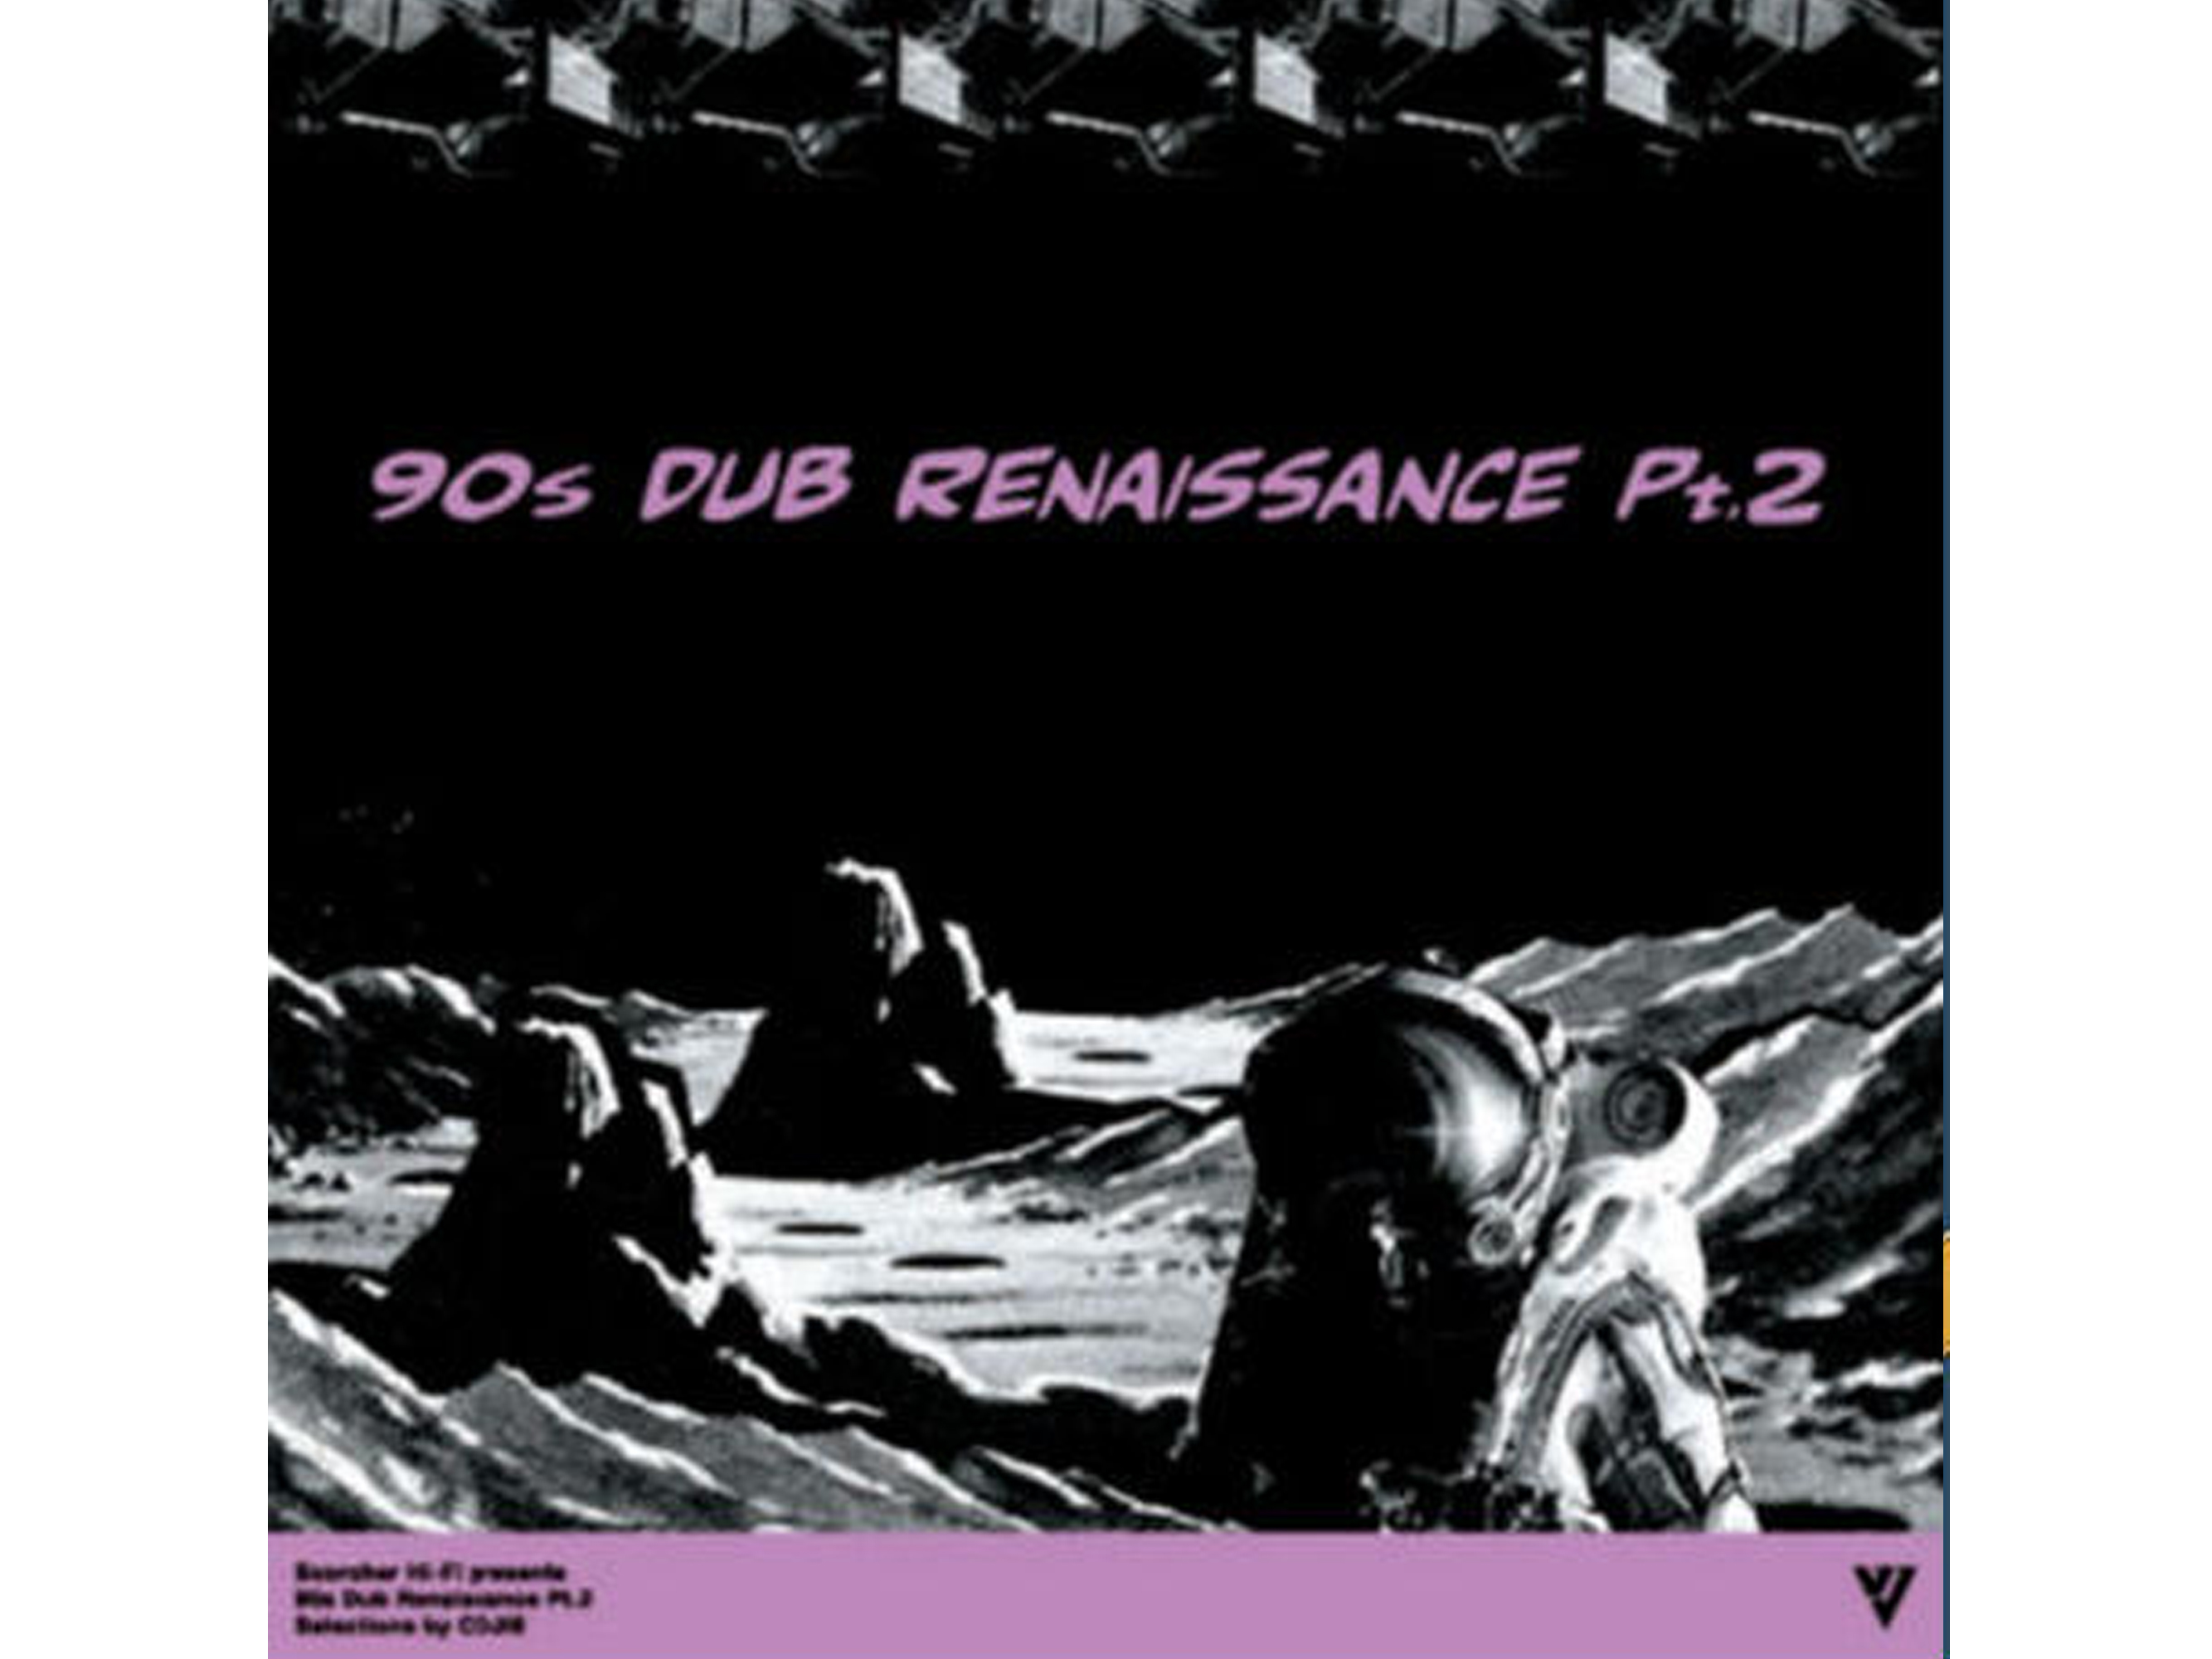 90s DUB RENAISSANCE Pt.2 -MIGHTY CROWN- Selected by COJIE